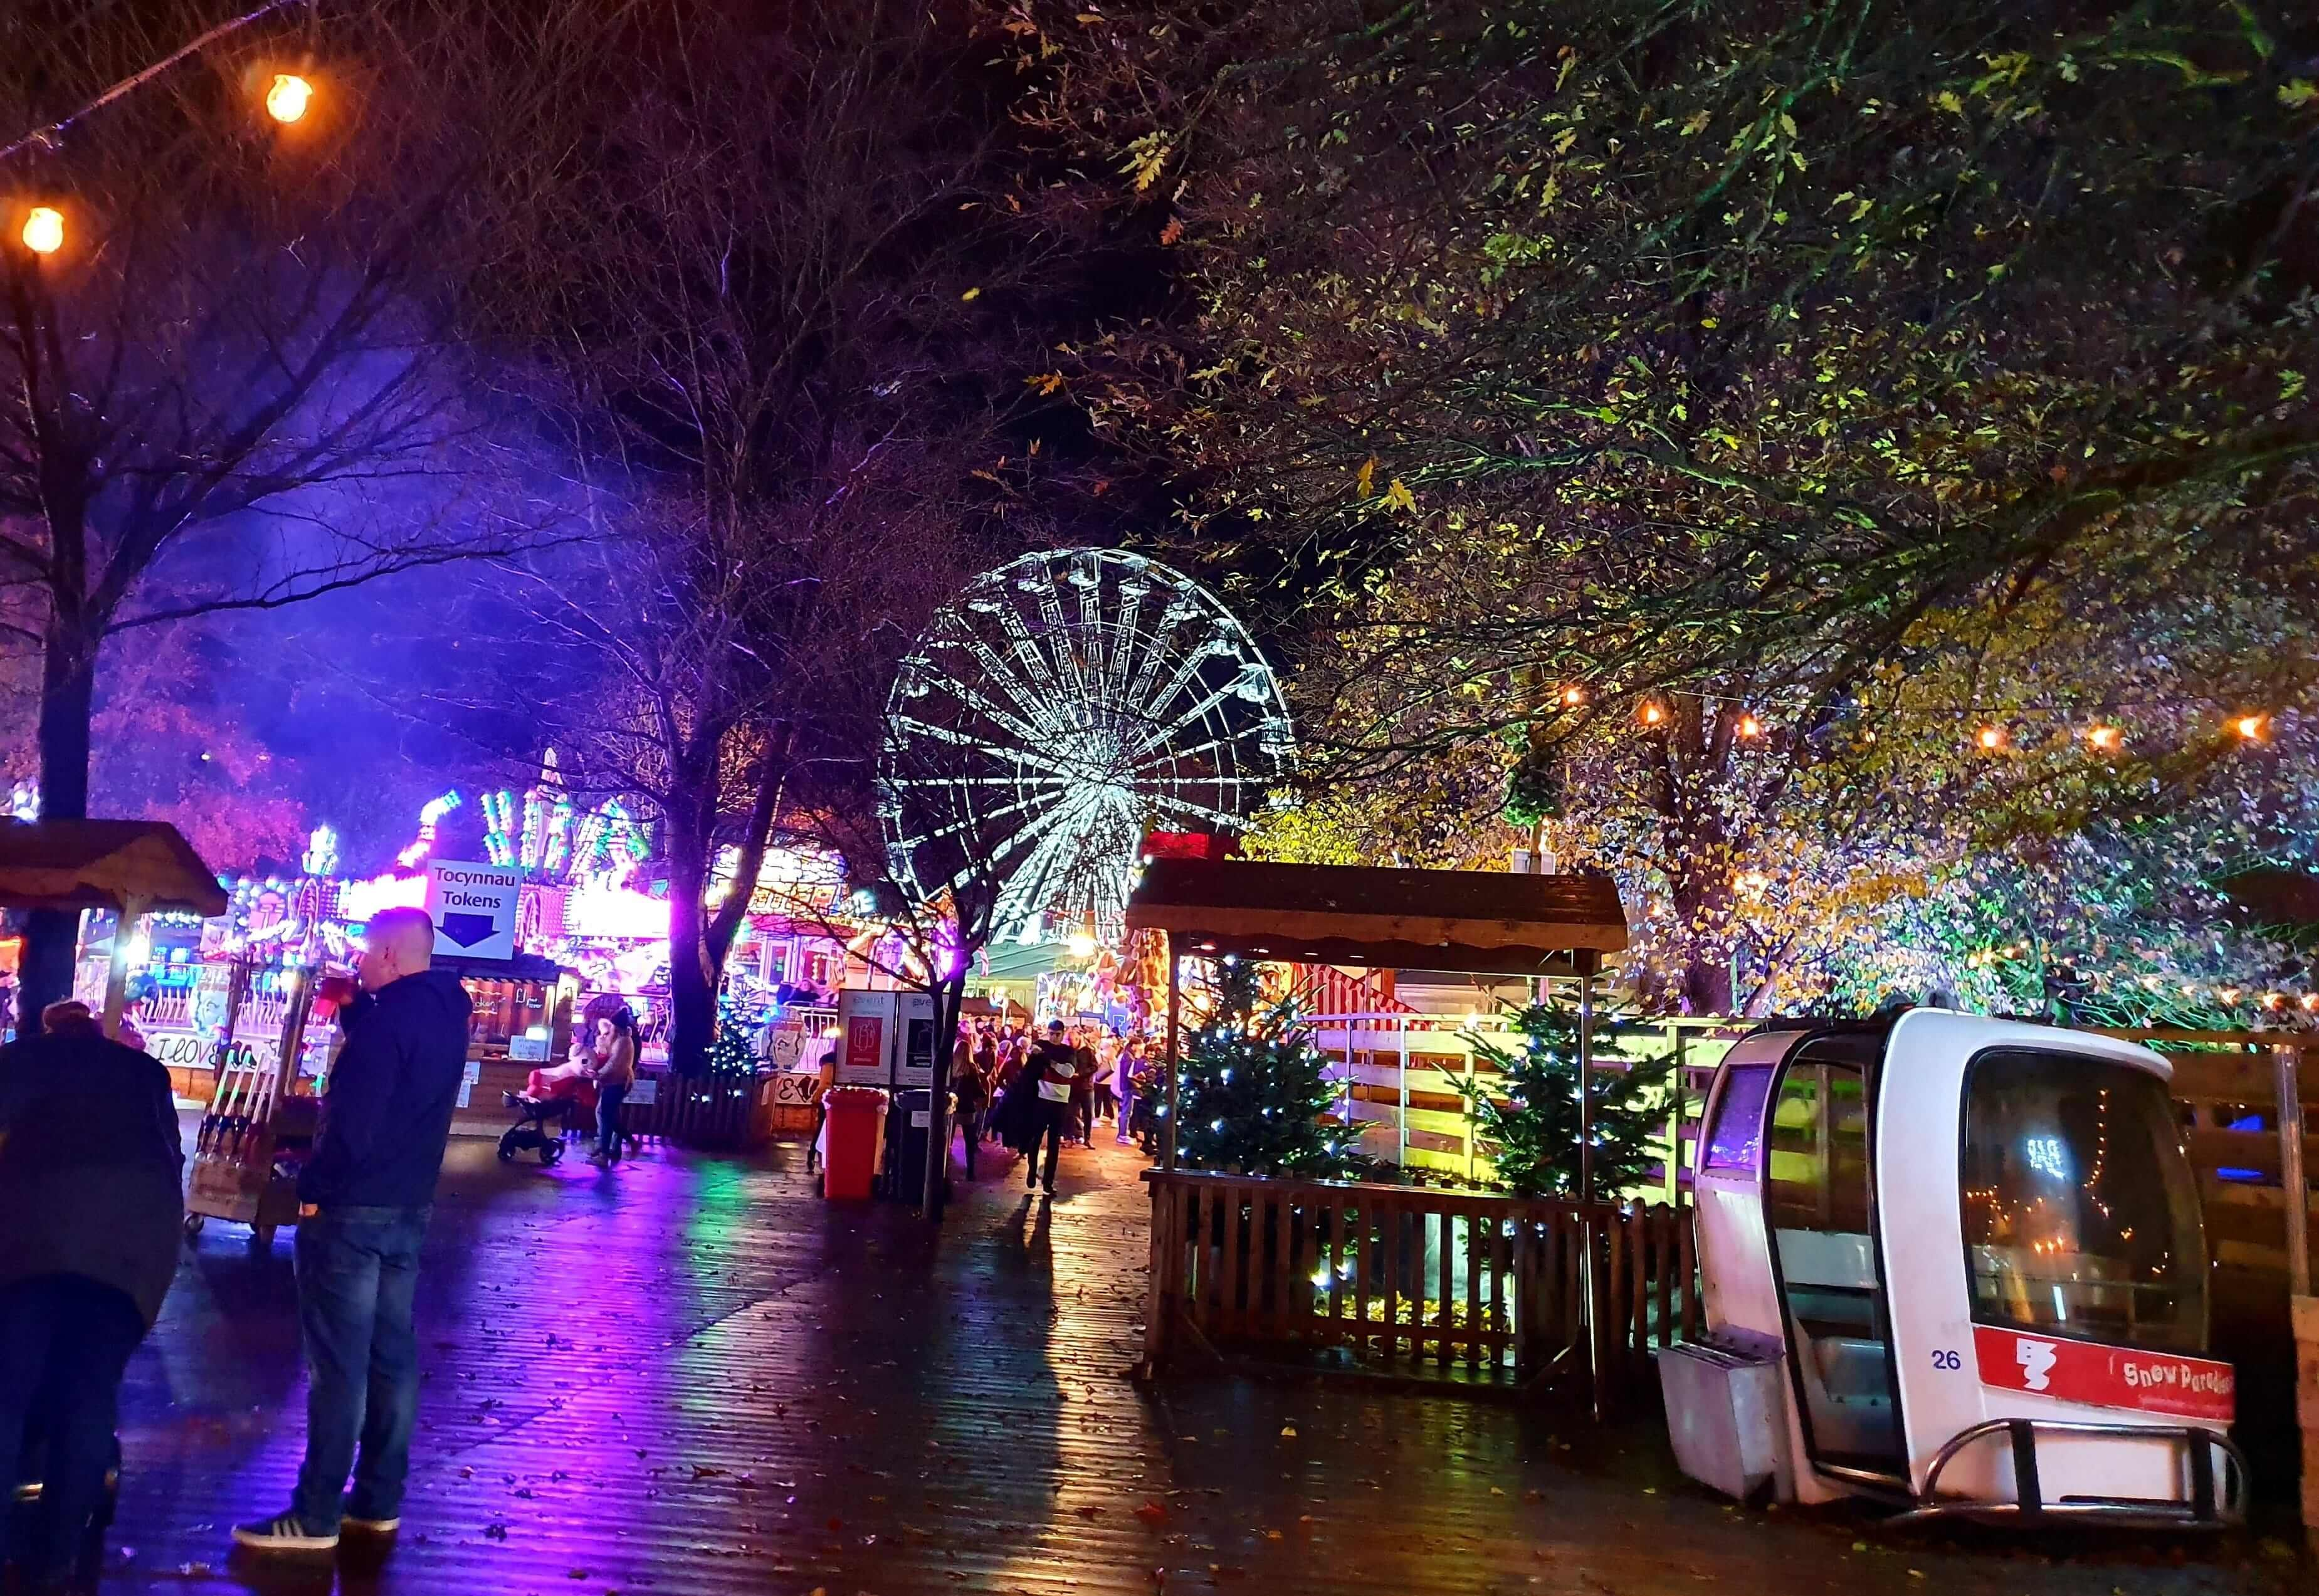 Image may contain: Light, Ferris Wheel, Shoe, Apparel, Footwear, Clothing, Lighting, Crowd, Festival, Amusement Park, Theme Park, Human, Person